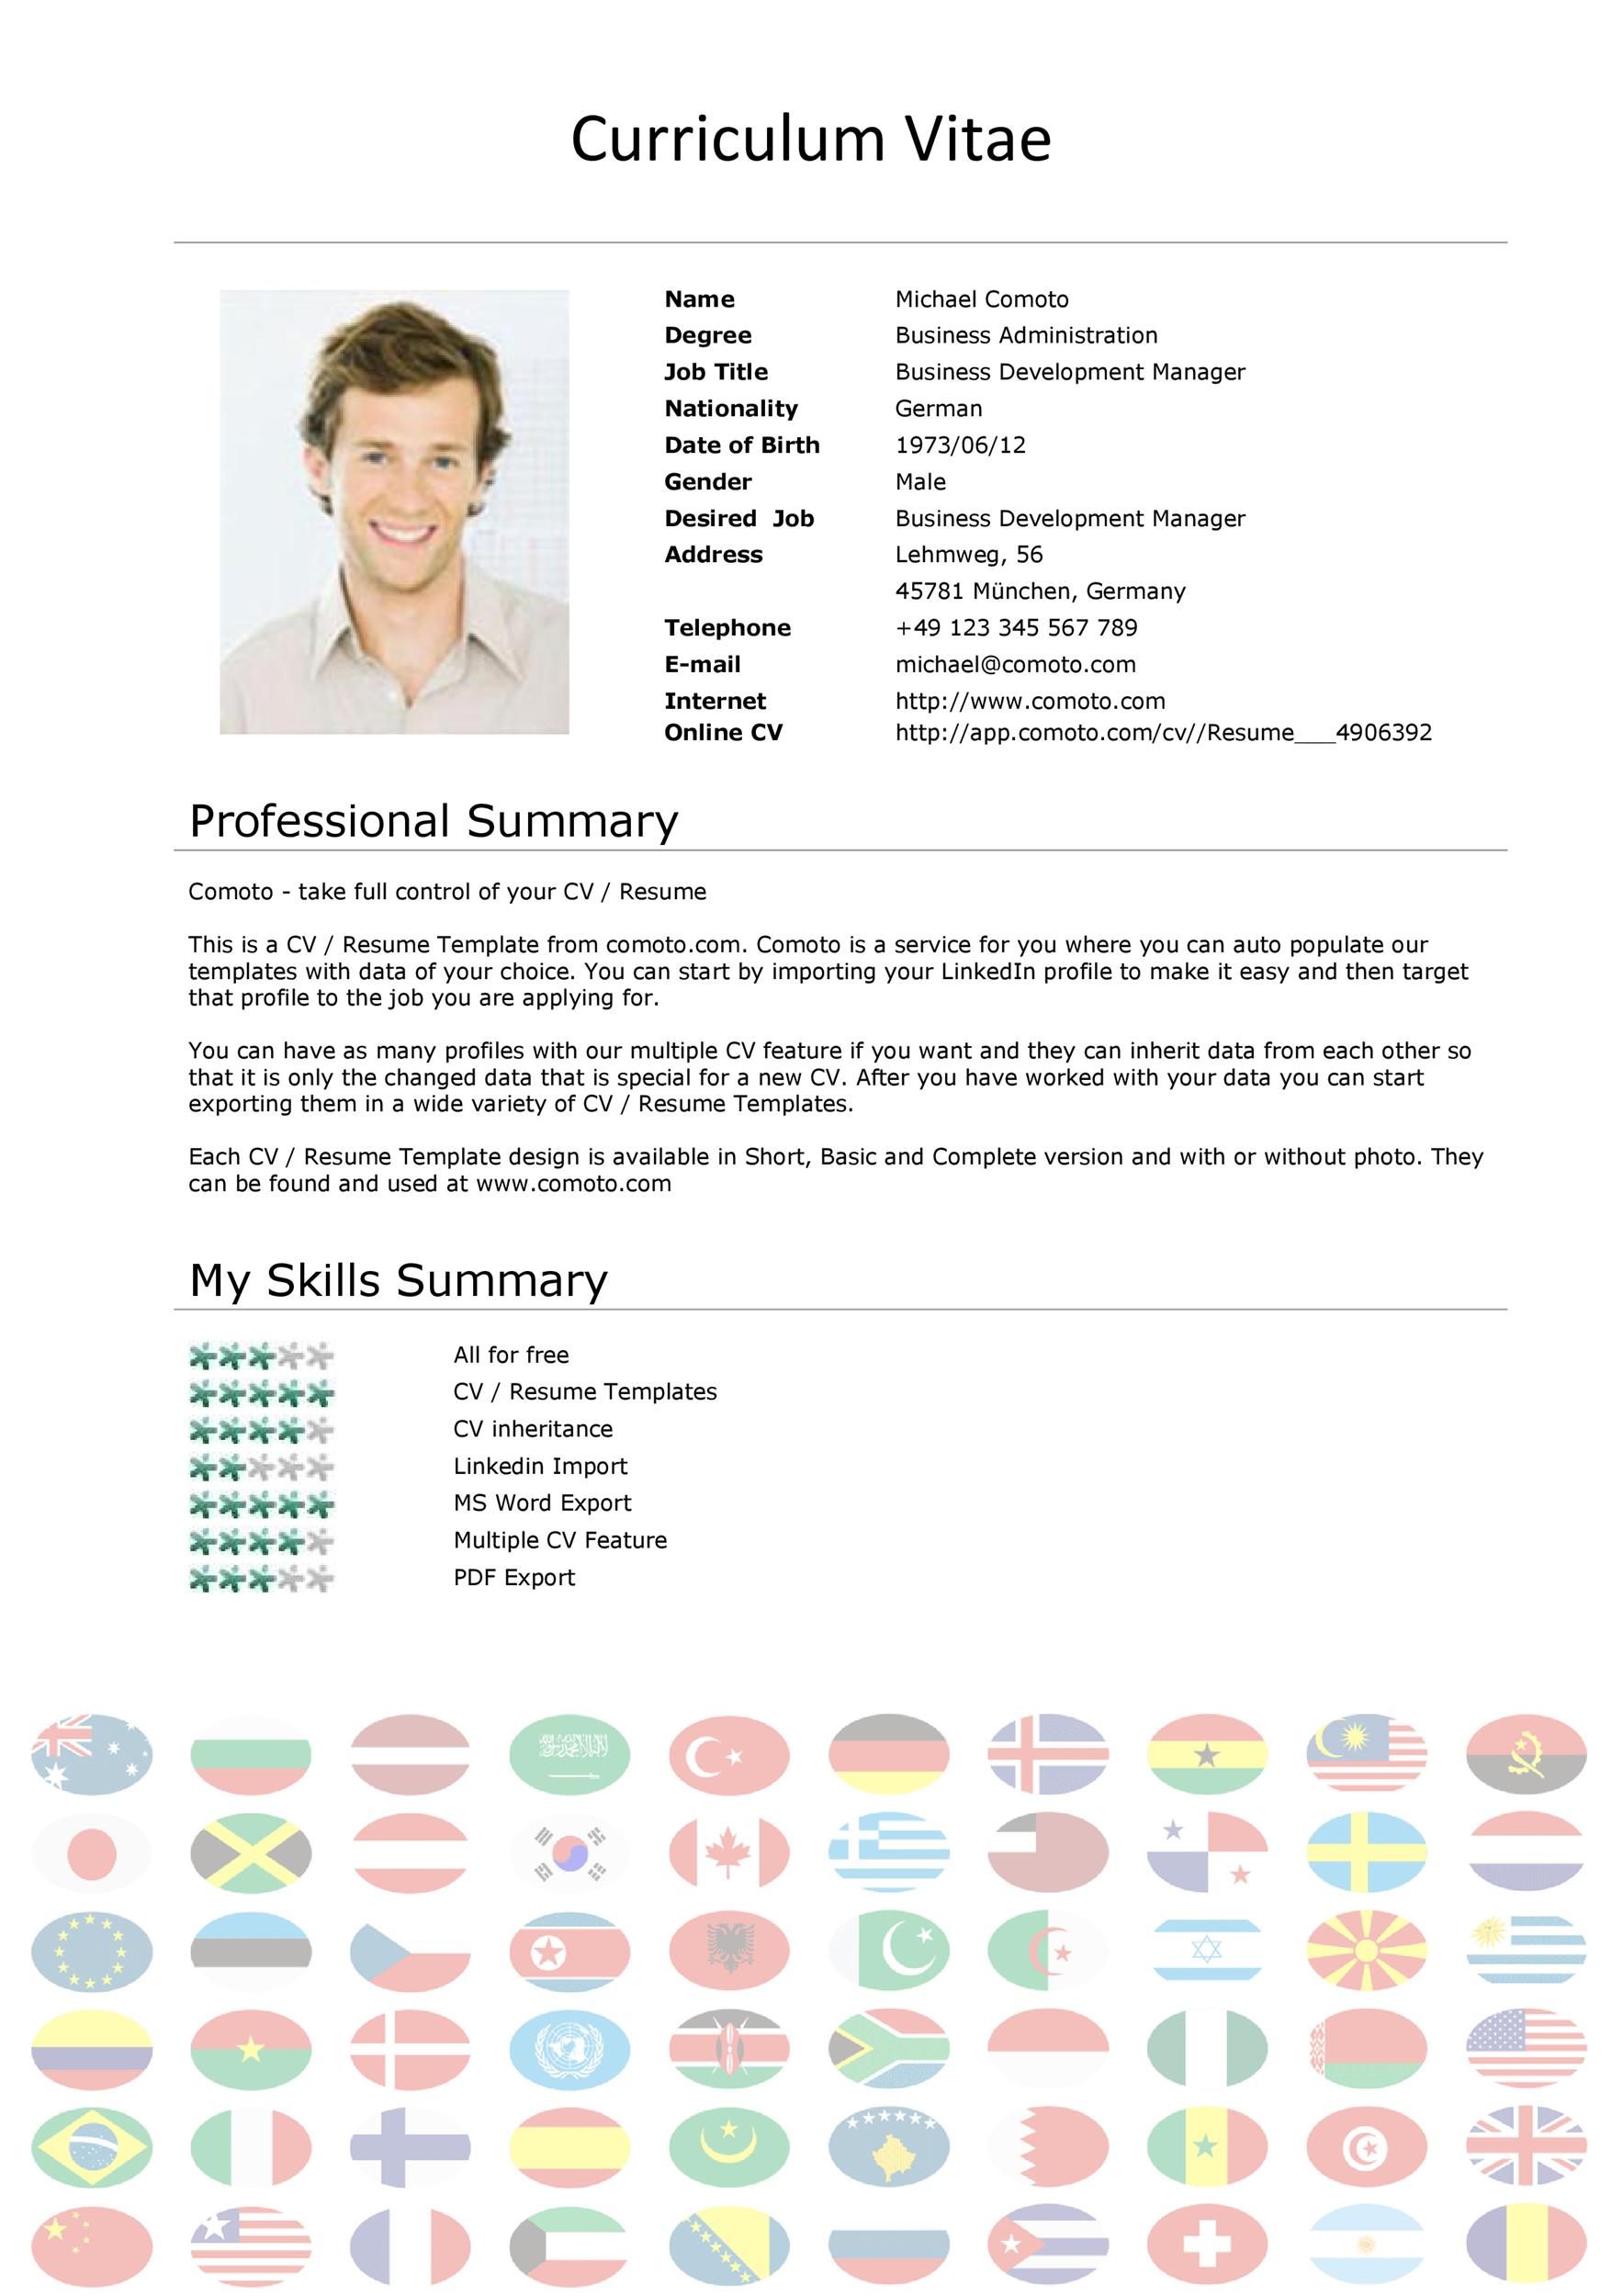 48 great curriculum vitae templates  u0026 examples